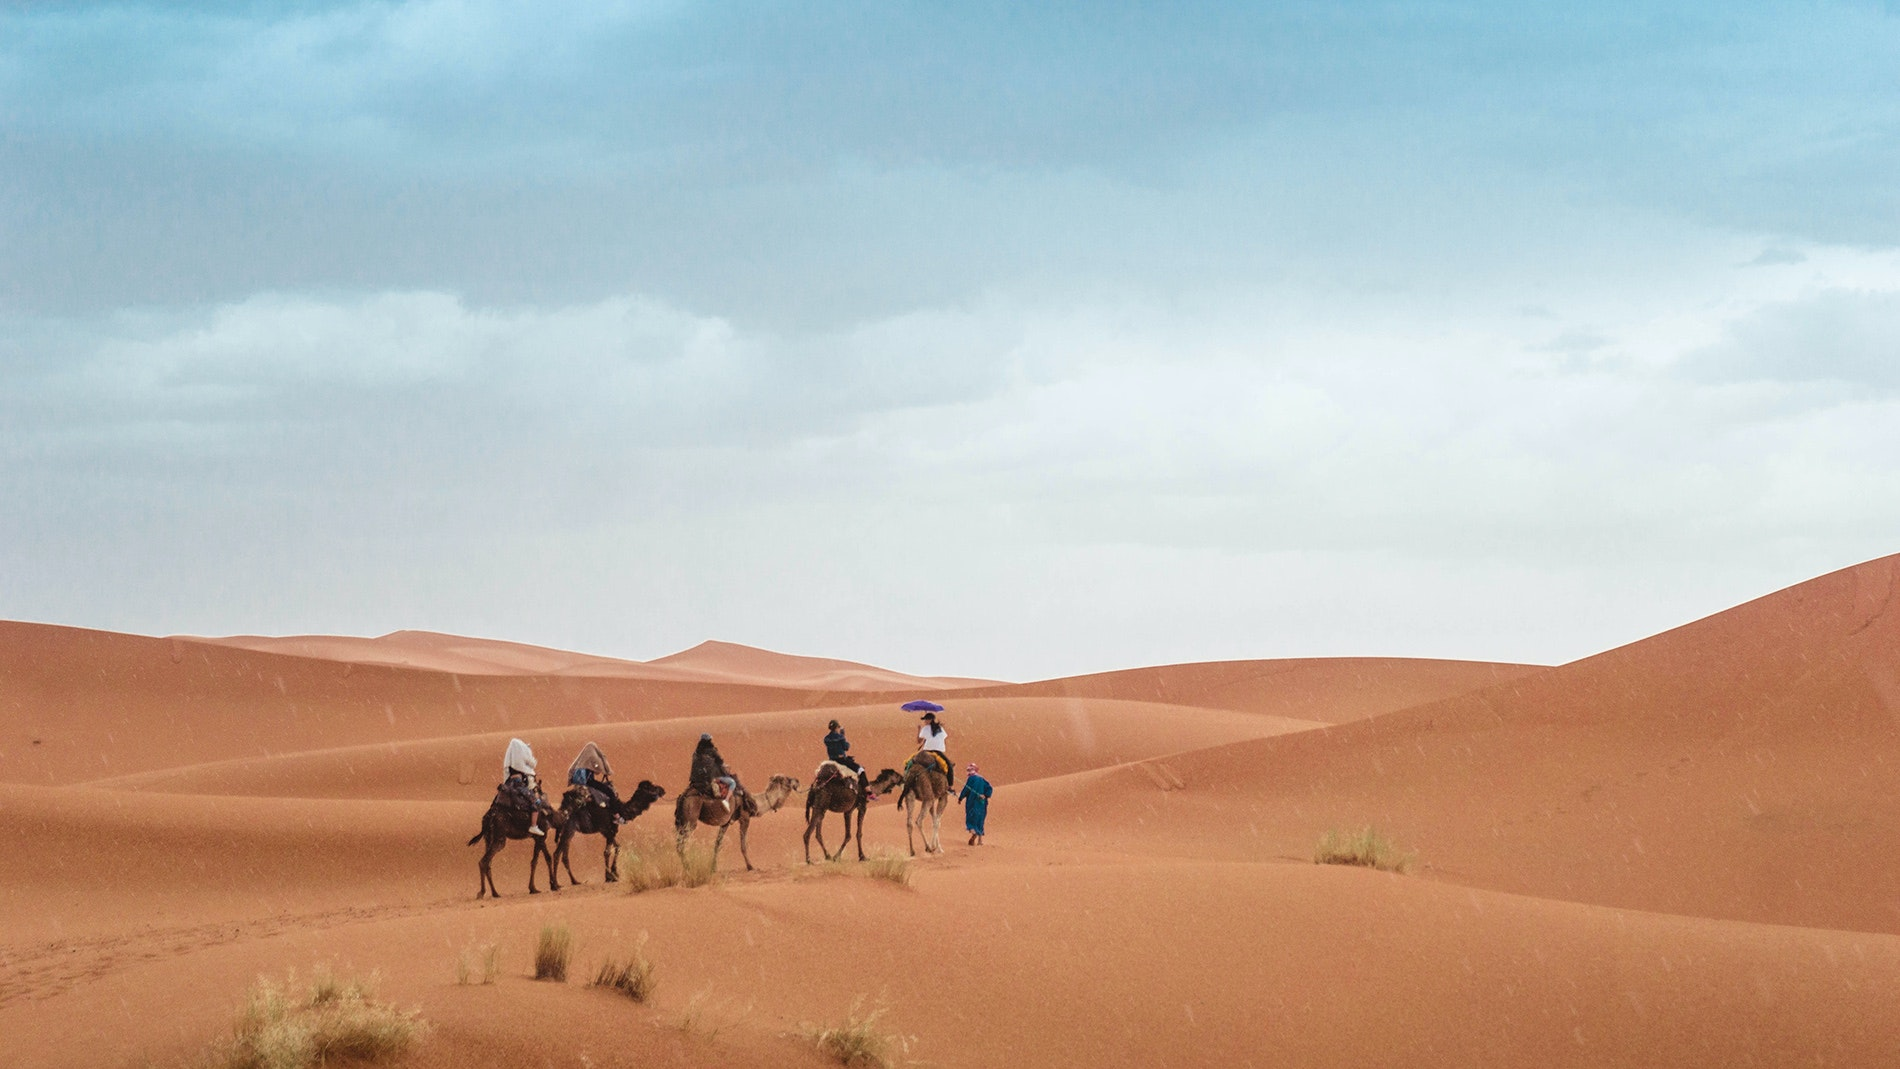 Aries are encouraged to get far away from anything they have ever known in 2019. A trip through the Sahara Desert on camelback, perhaps?